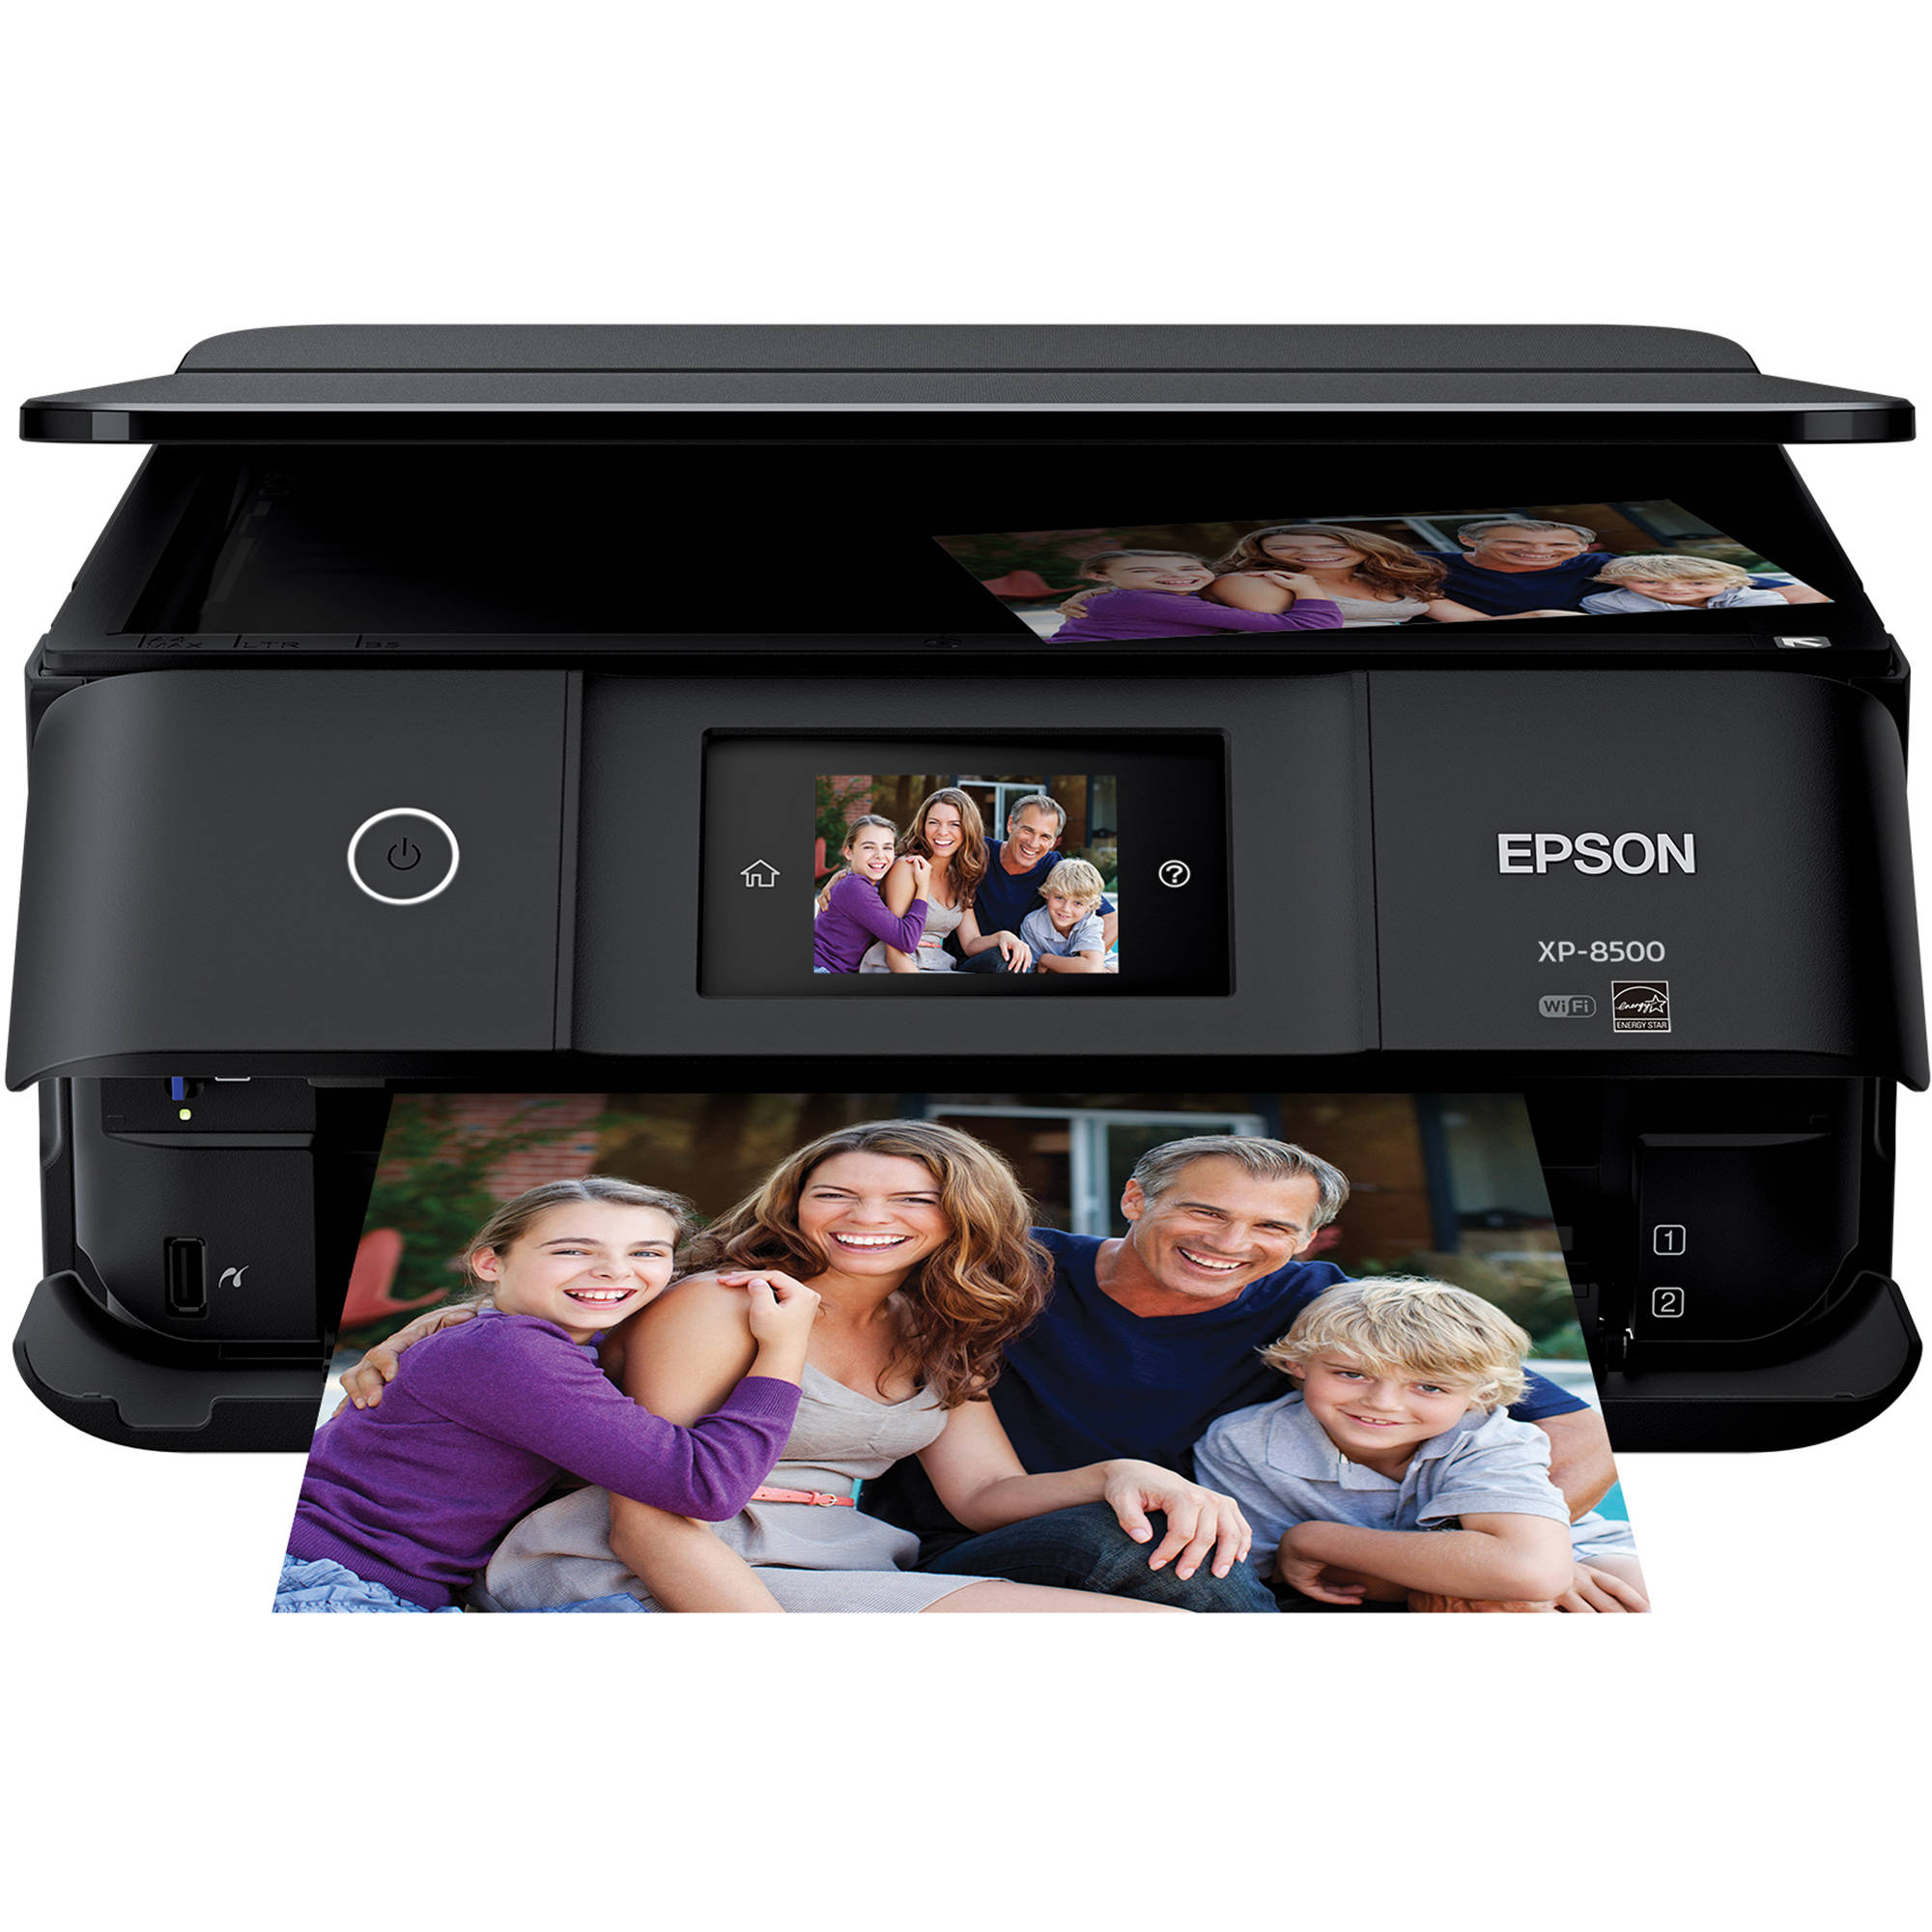 epson Expression Photo XP 8500 driver download for window